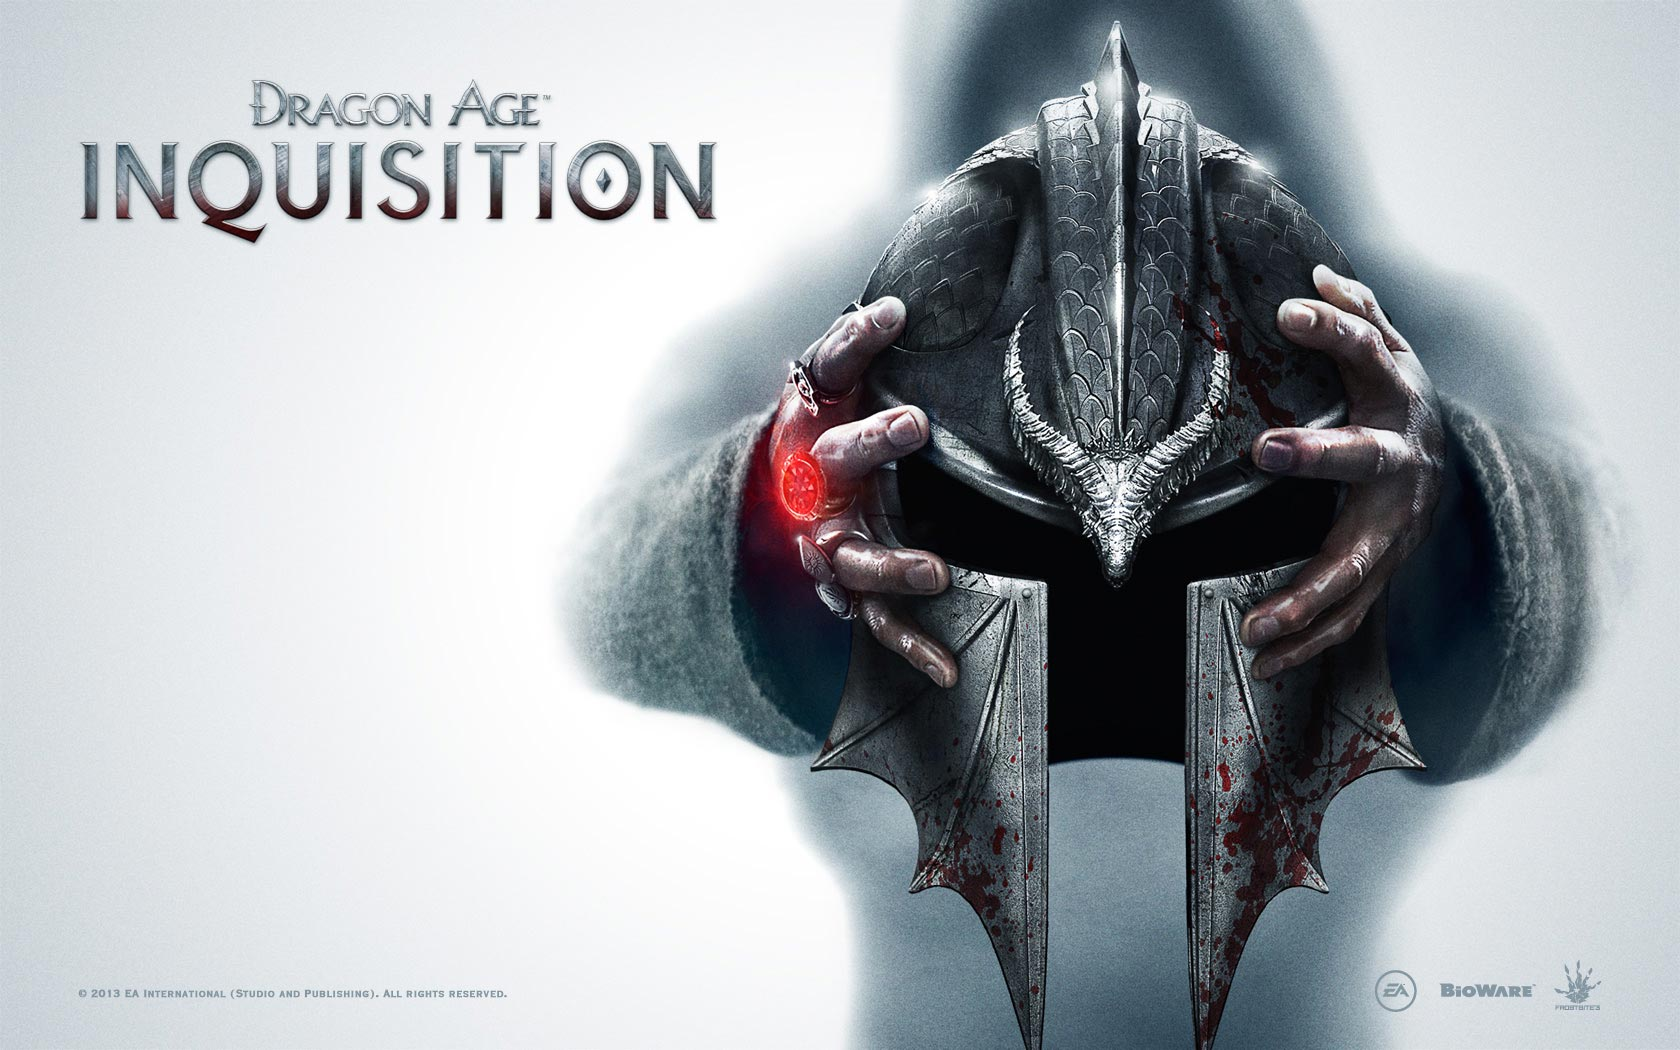 Dragon-Age-inquisition a